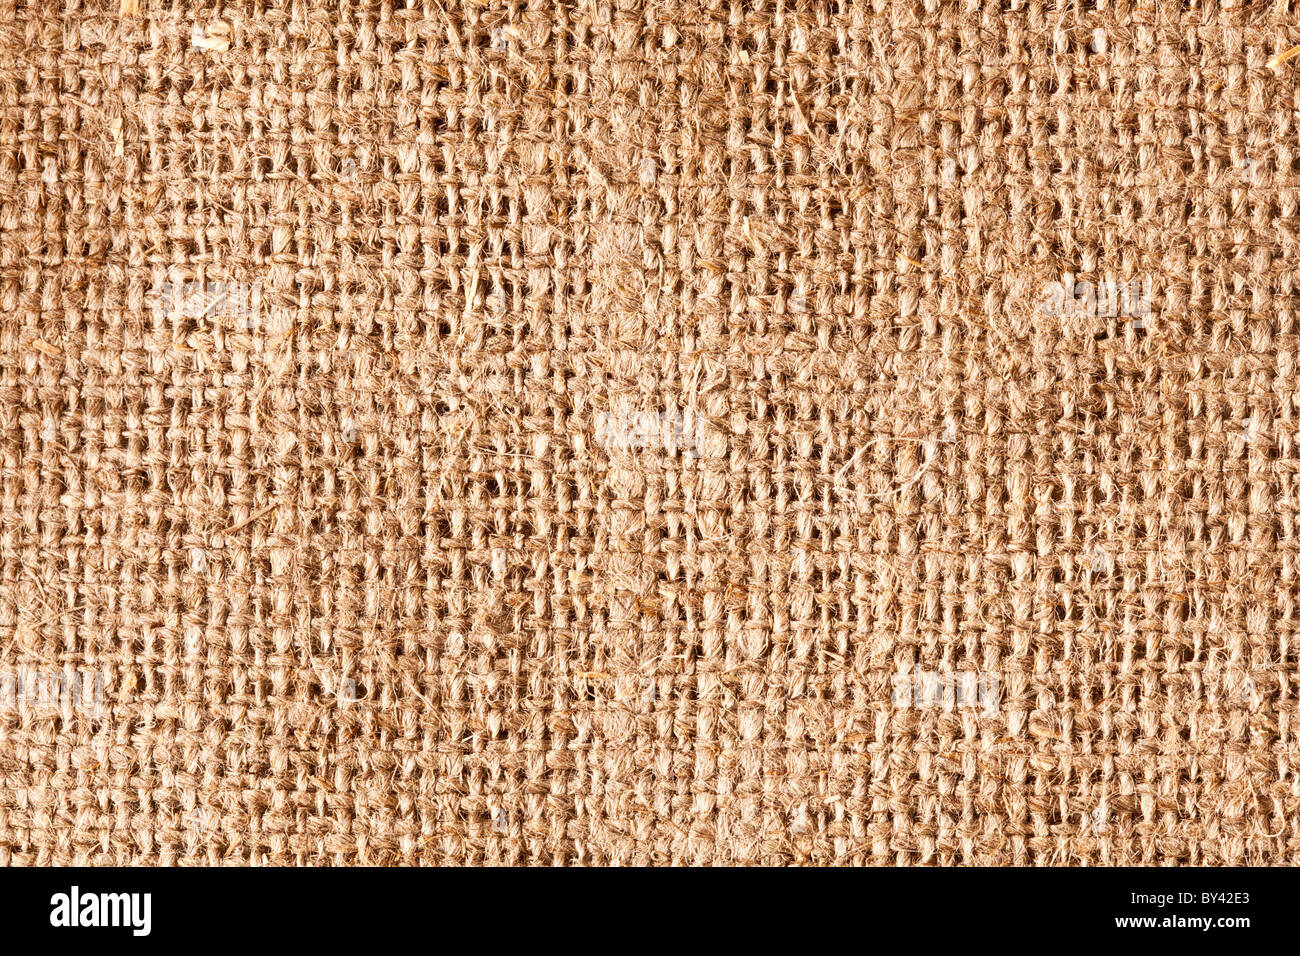 Image texture of burlap. - Stock Image